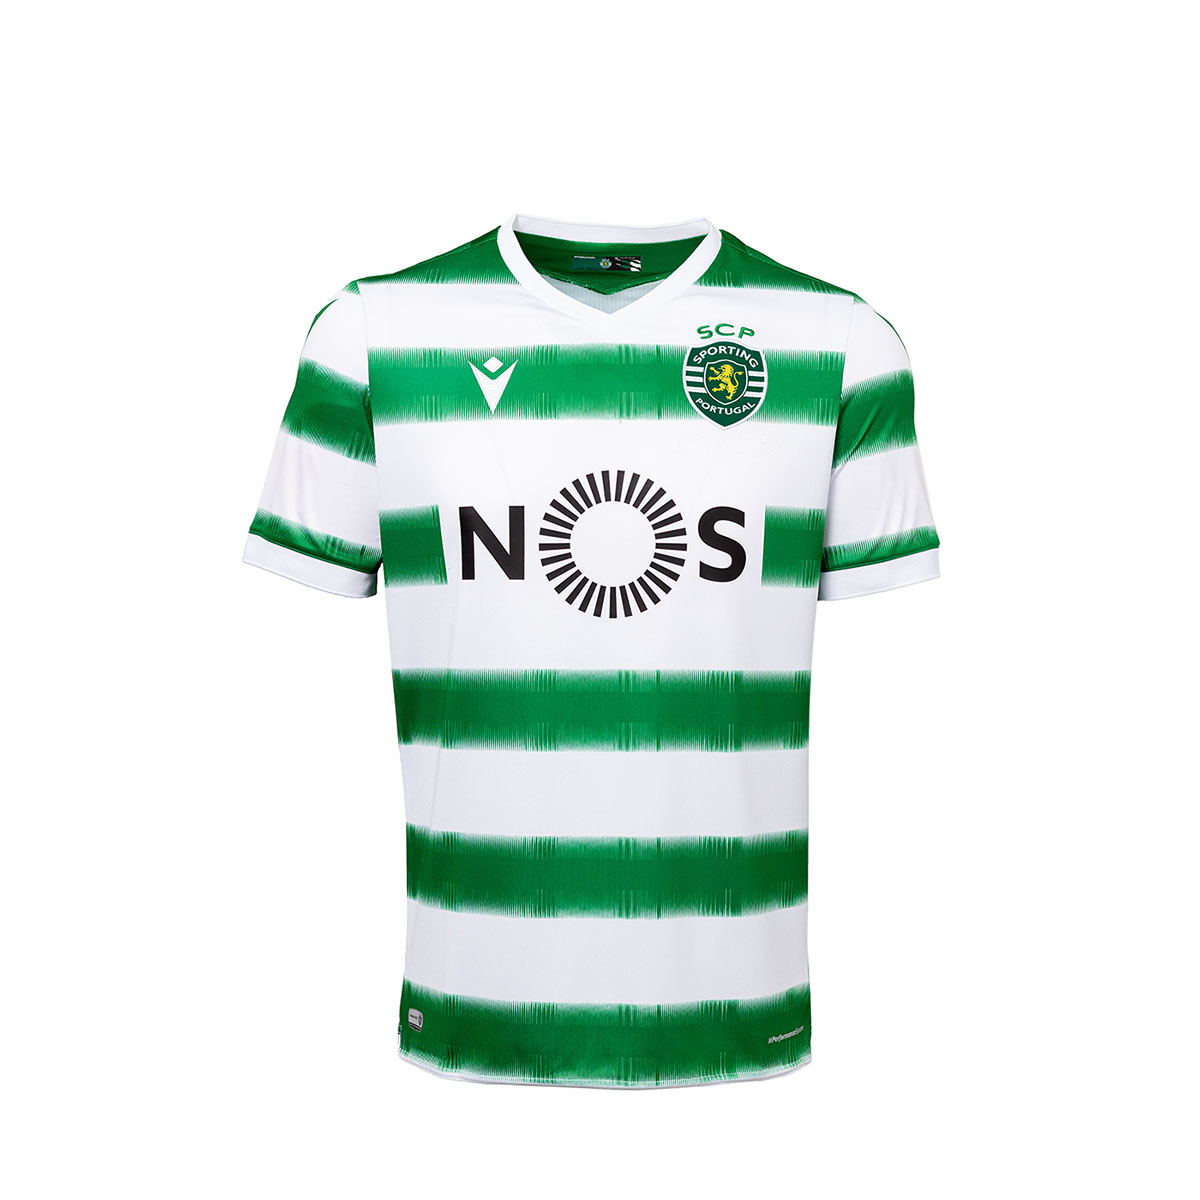 https://assets-mantosdofutebol.sfo2.digitaloceanspaces.com/wp-content/uploads/2020/06/Camisas-do-Sporting-Club-2020-2021-Macron-1.jpg